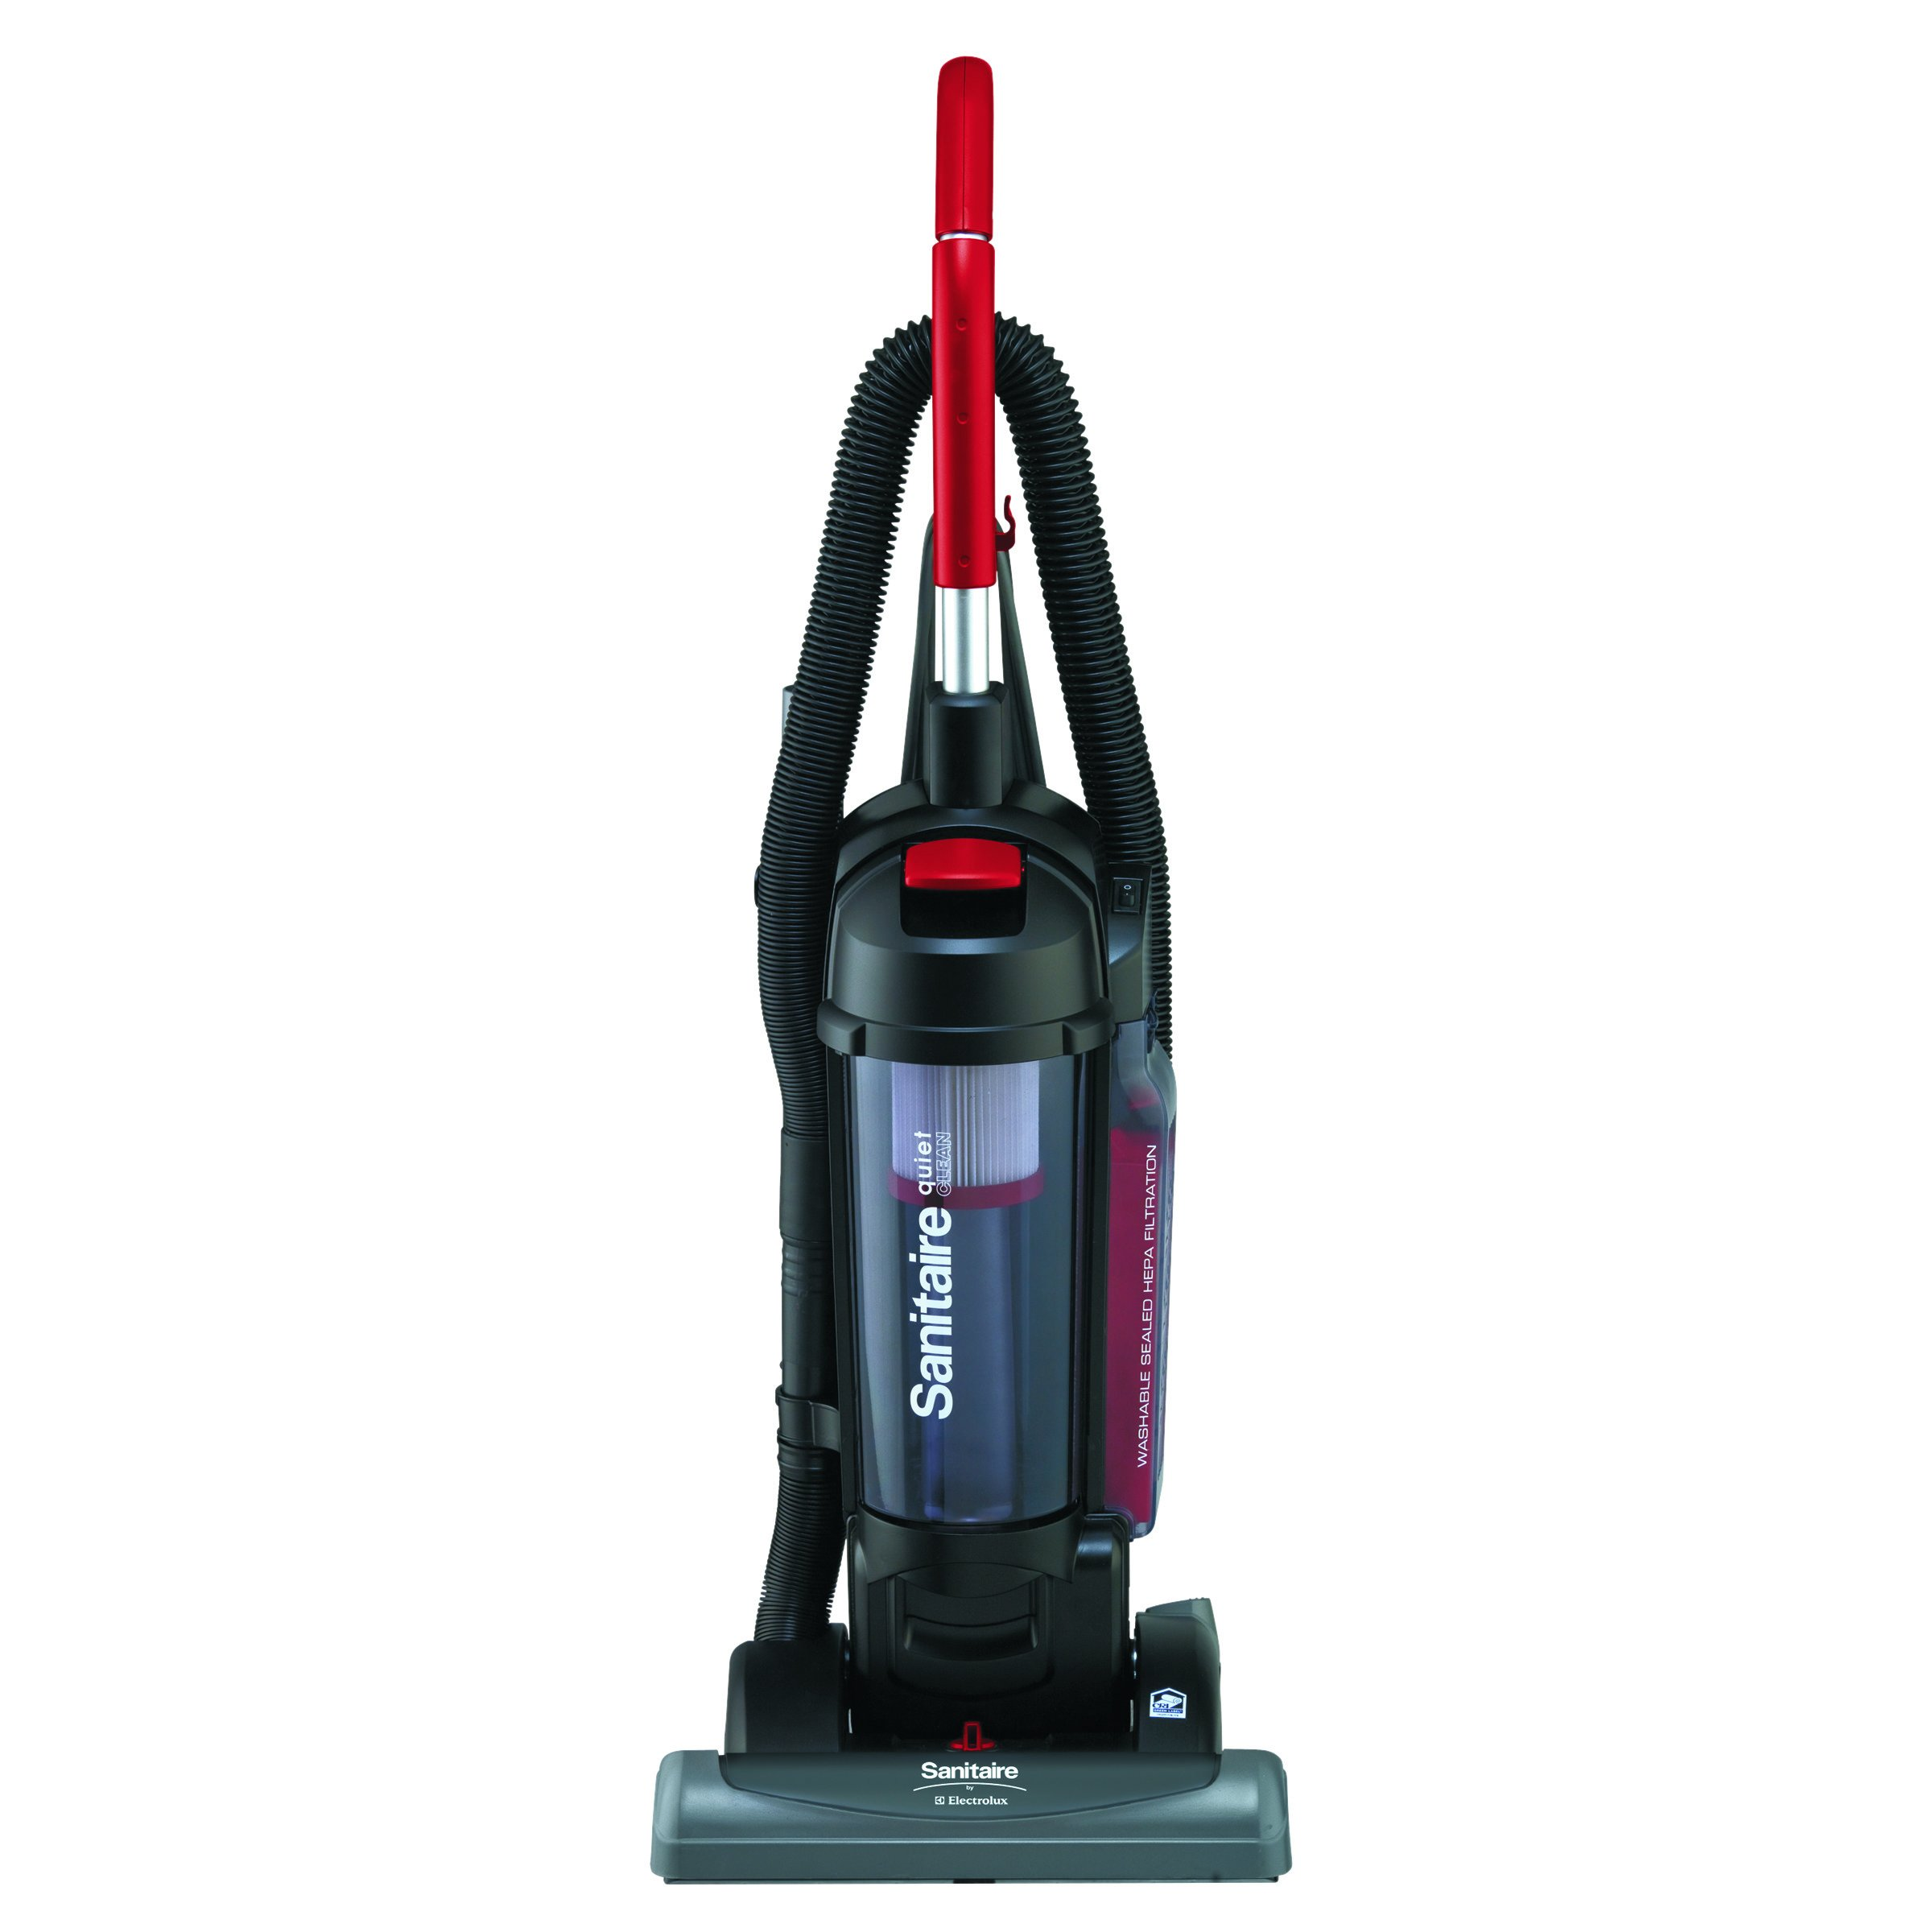 Sanitaire SC5845B Bagless/Cyclonic Vacuum with Sealed HEPA Filtration, Red